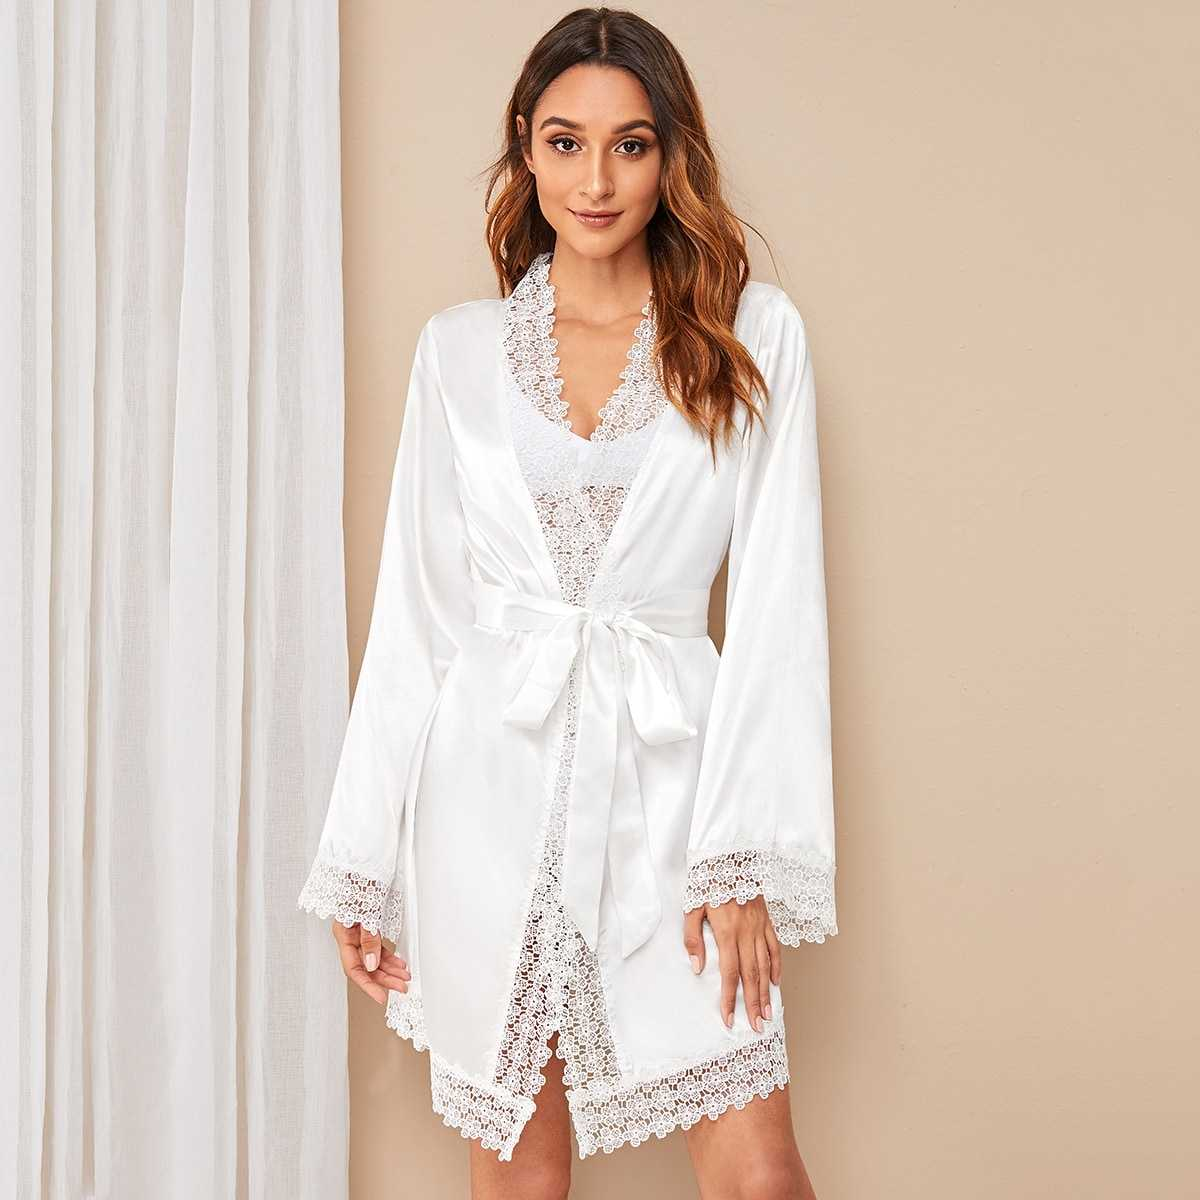 Floral Lace Satin Belted Robe in White by ROMWE on GOOFASH